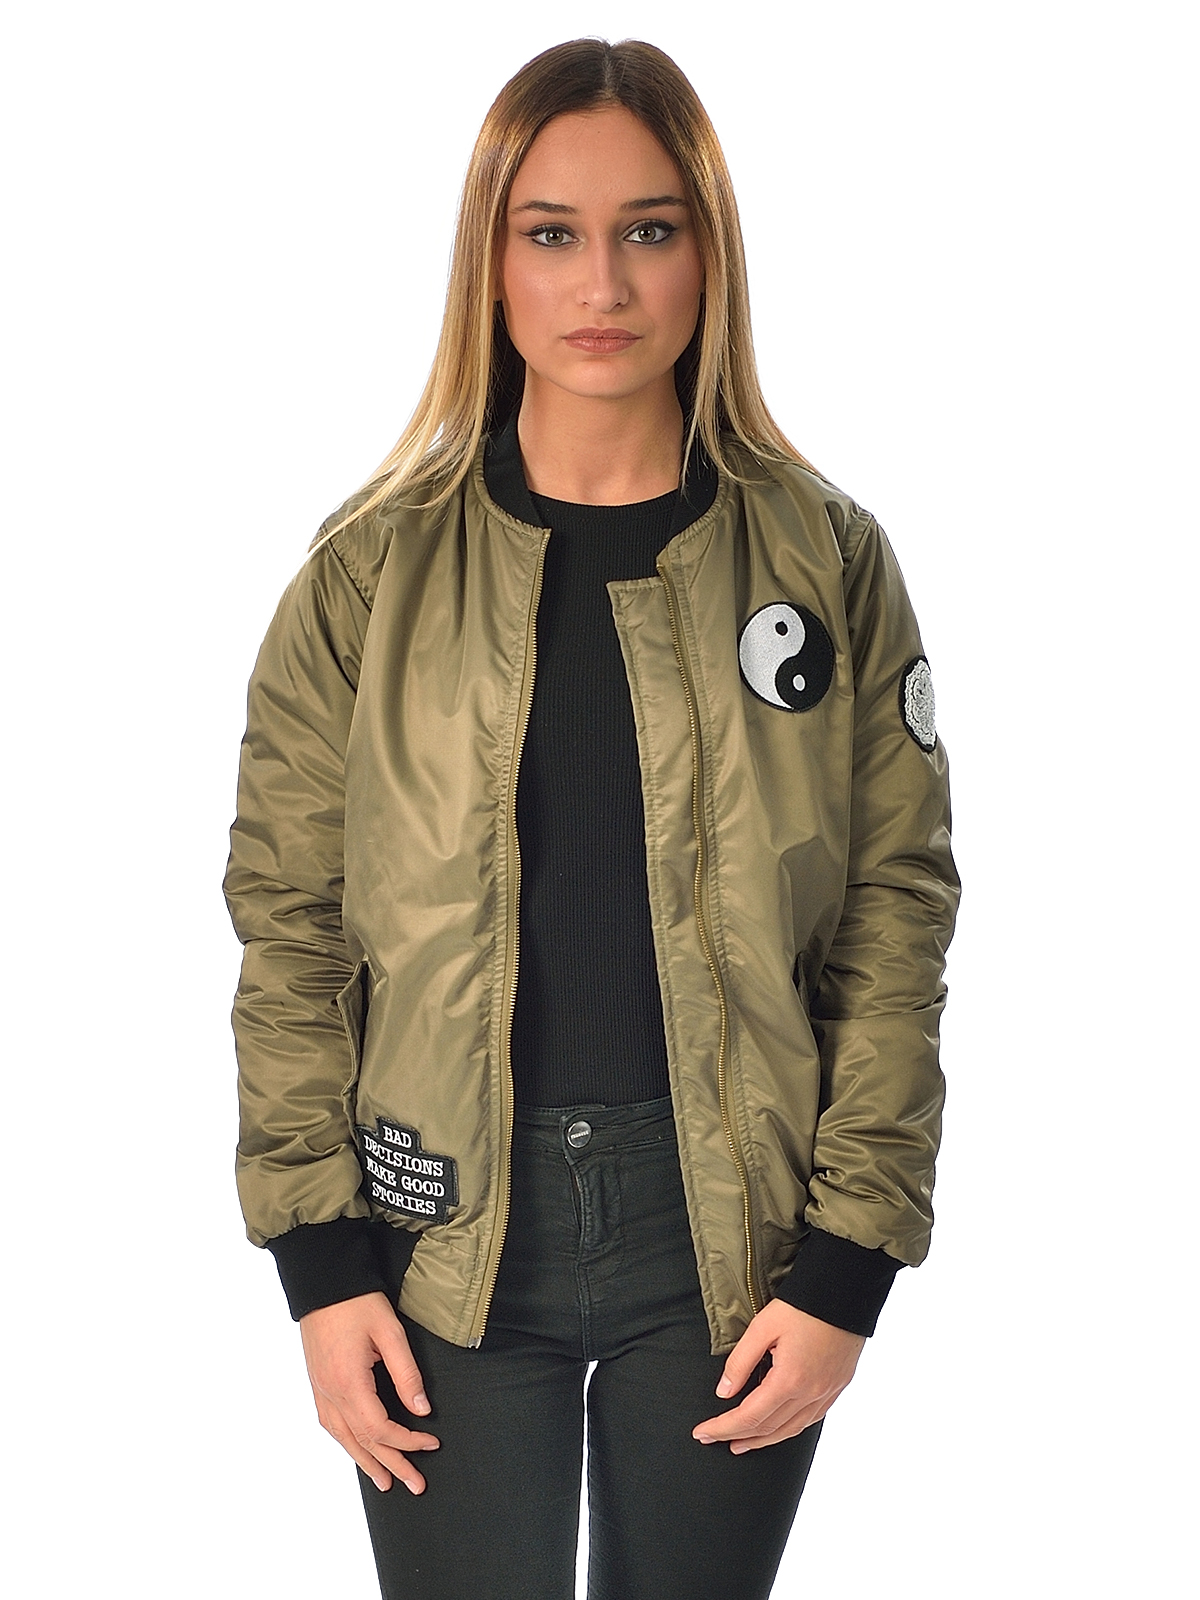 Yin Yang Bomber Women | Descy Official